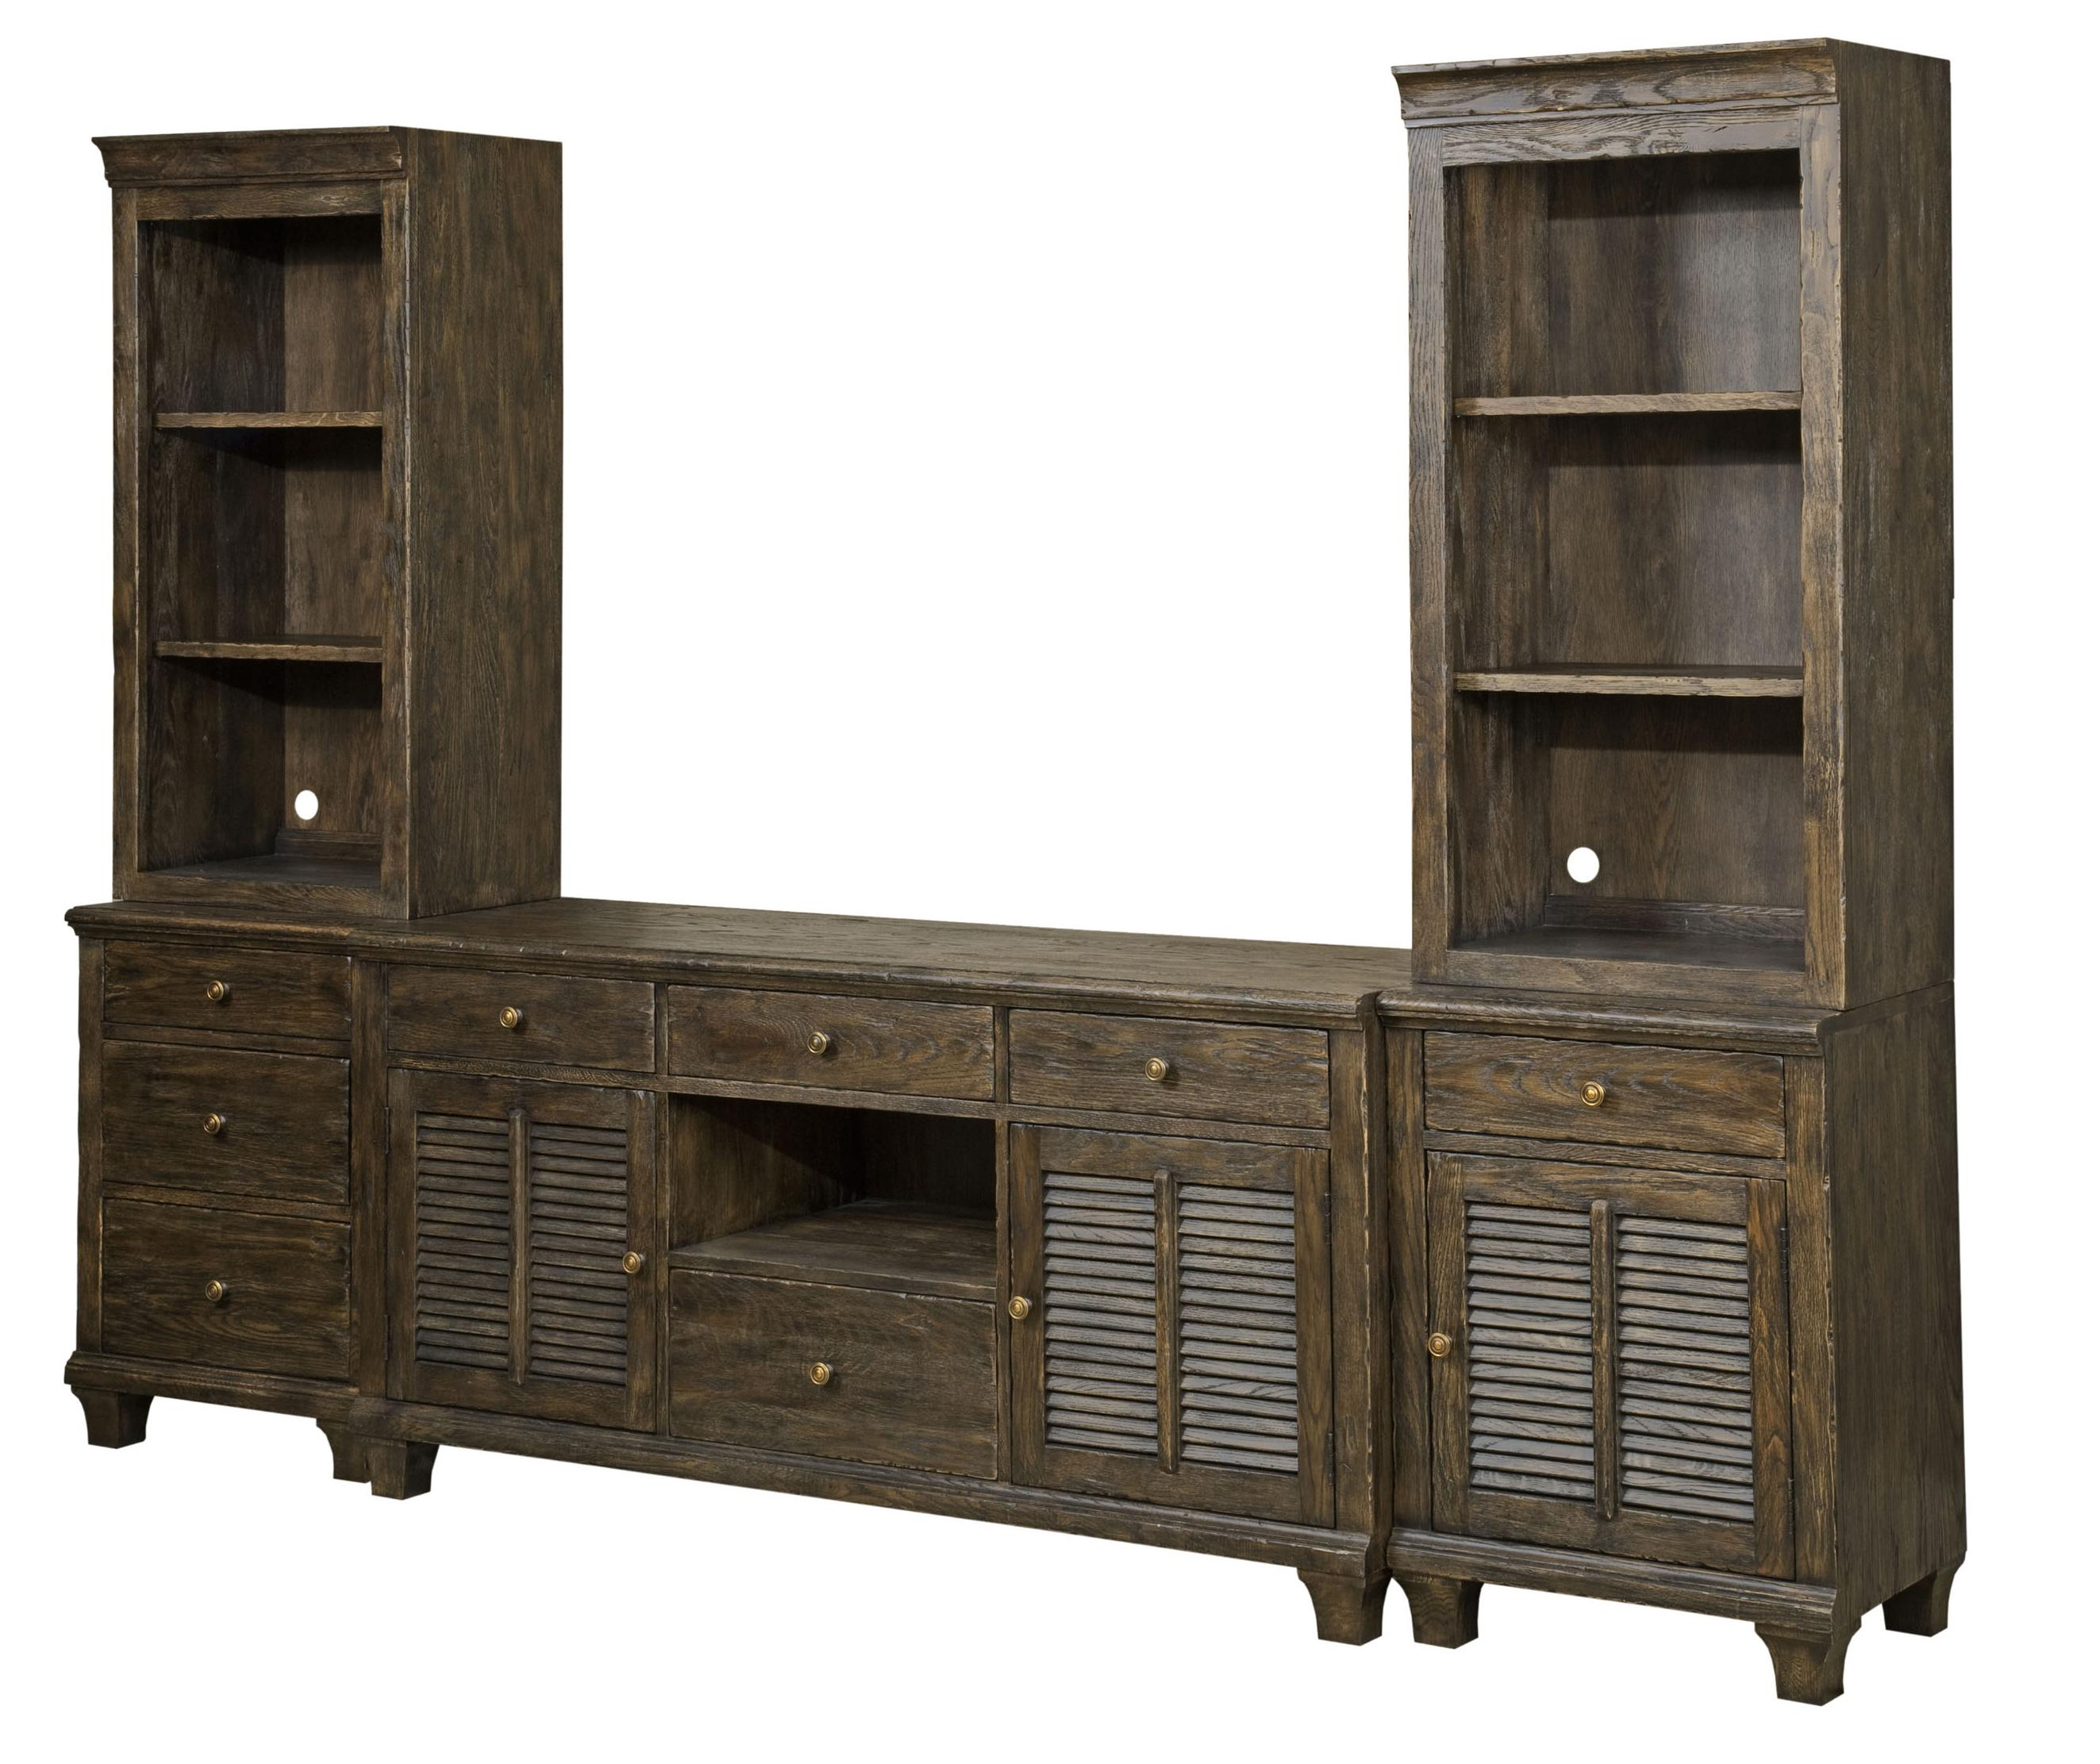 Merveilleux Kincaid Furniture Artisans Shoppe Accents Complete Lorraine 8 Drawer Media  Wall Unit With Louvered Doors And Rustic Finish   AHFA   Wall Unit Dealer  Locator